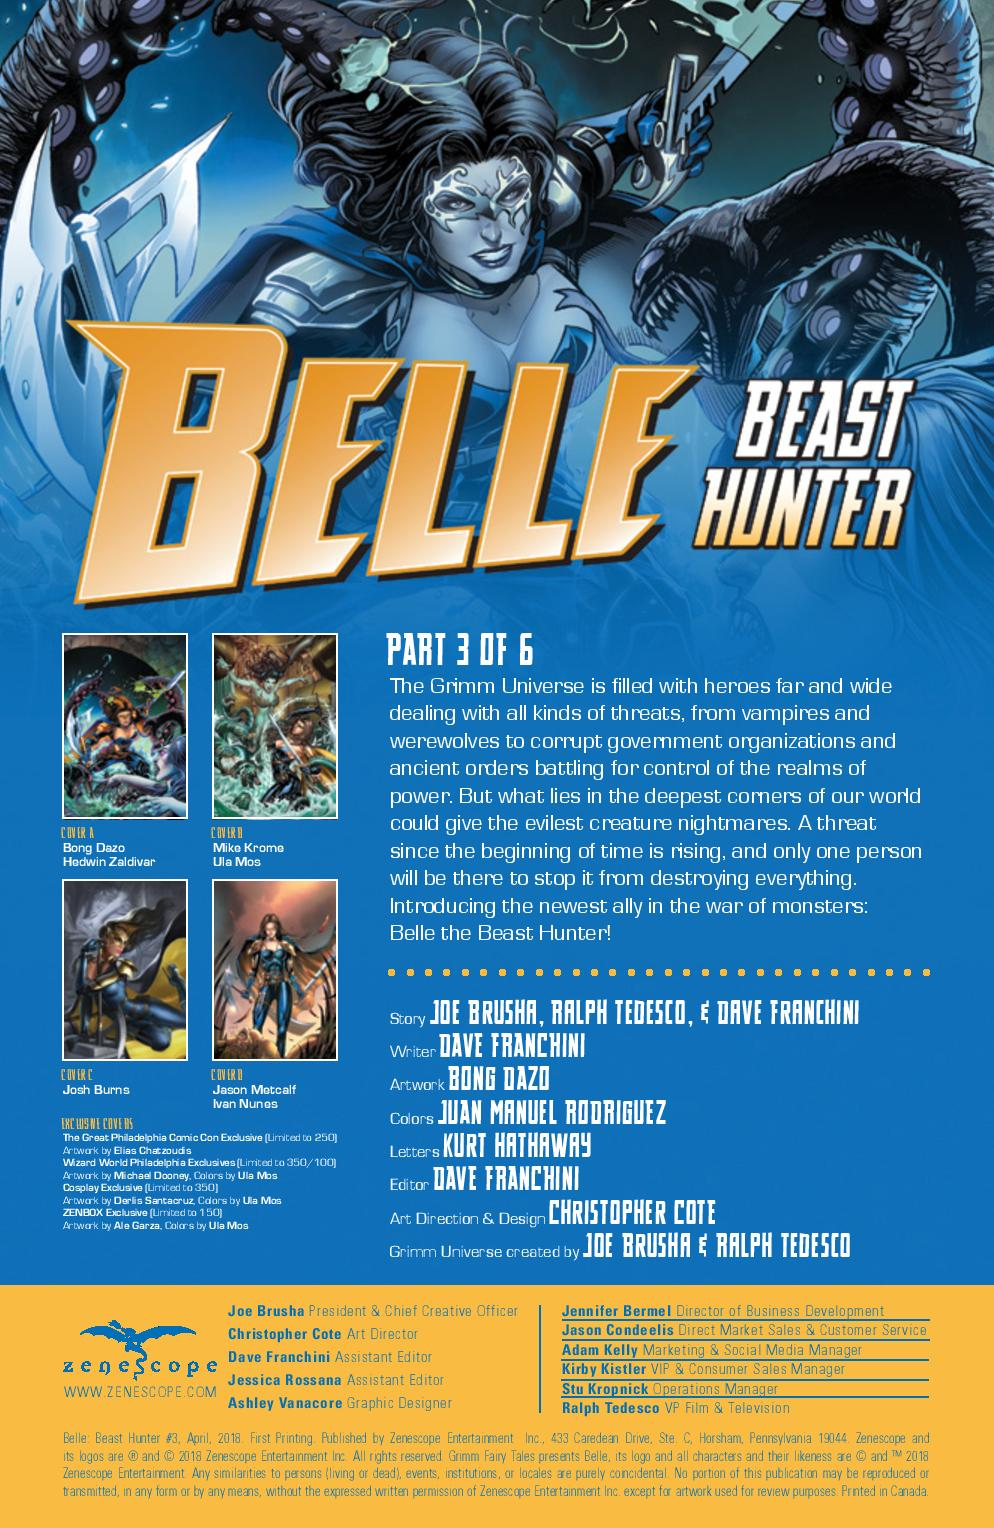 Comic Crypt: Belle the Beast Hunter #3 Preview!